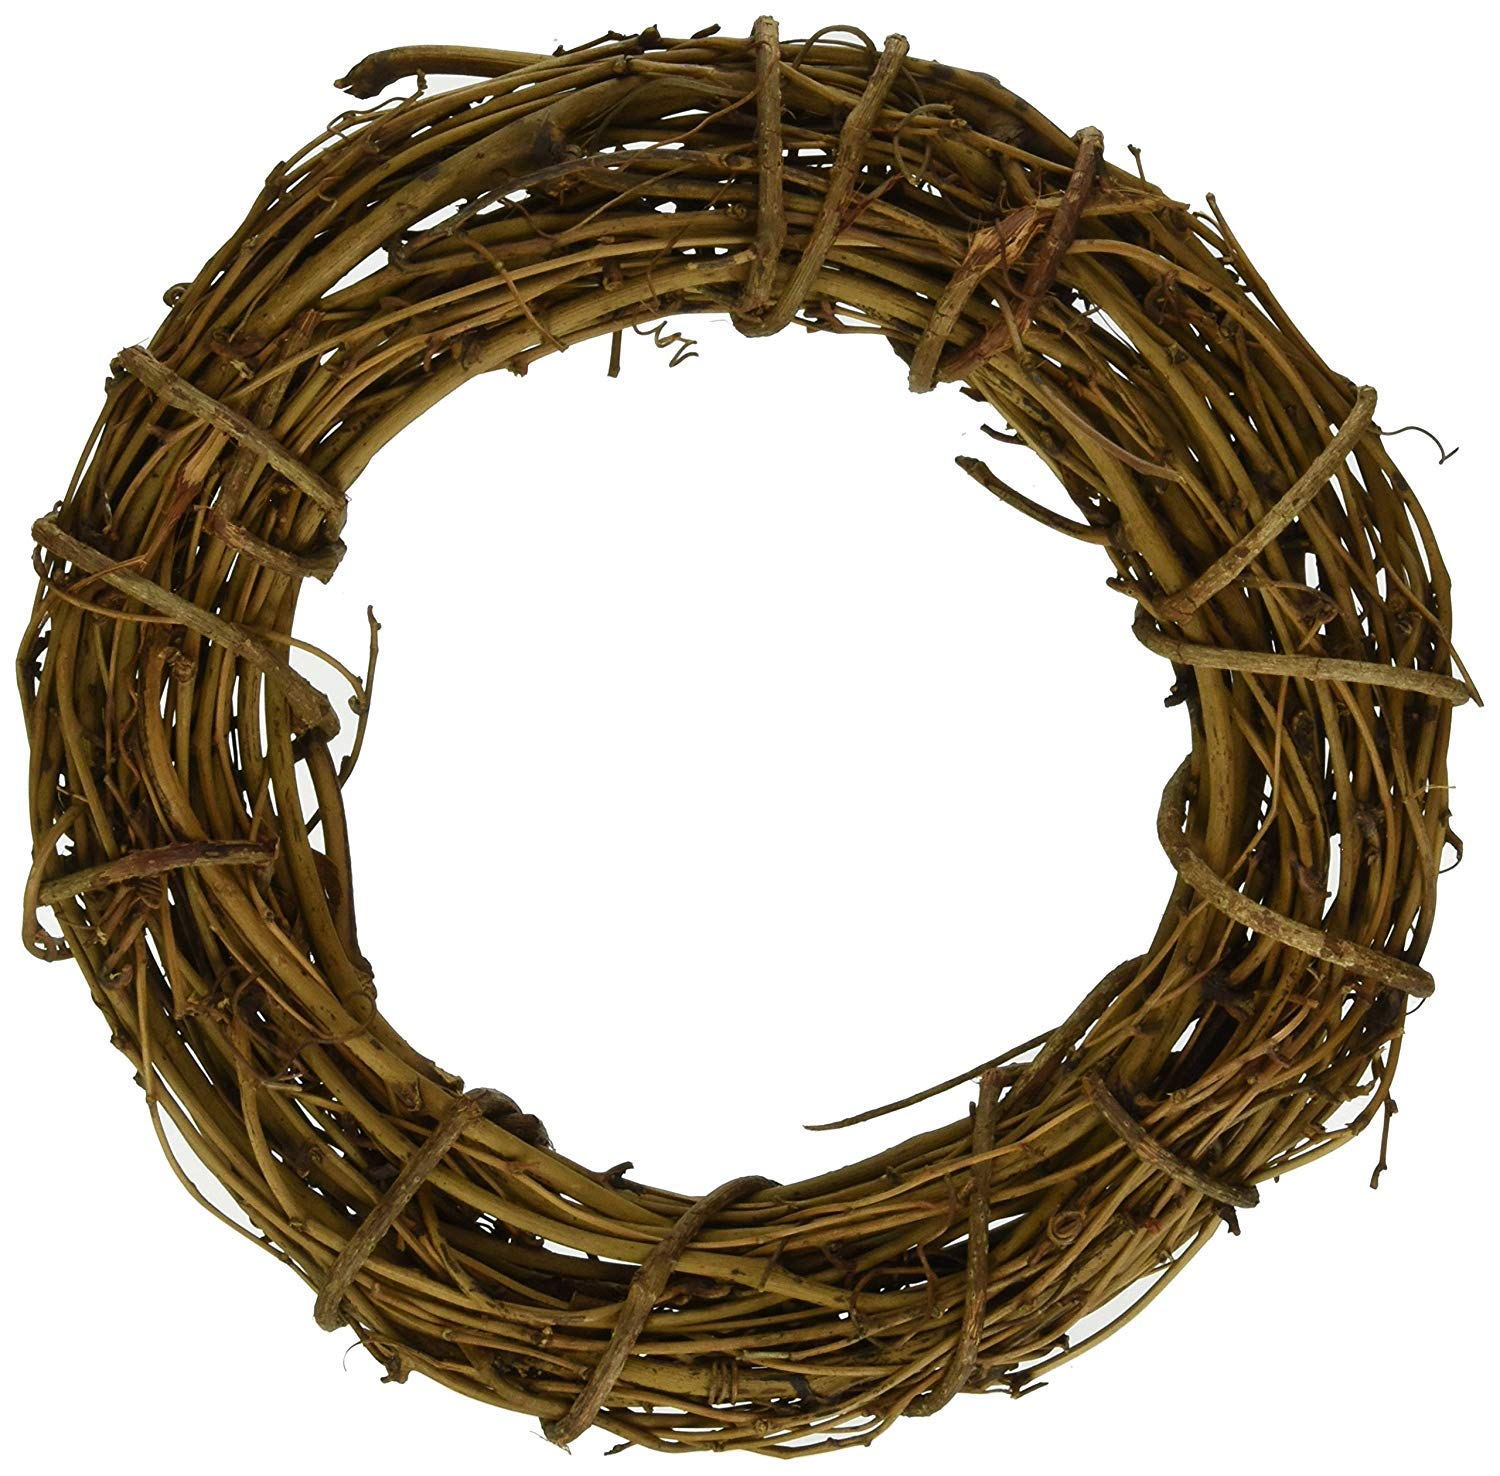 1pcs Natural Grapevine Wreath Ring Wreath DIY Craft Vines Base Grapevine Roll for Rustic Summer Fall Christmas Wreath Door Garland Home Wedding Party Decor Gift Hanging Decor Wreaths Supplies, 20inch FENGMANG